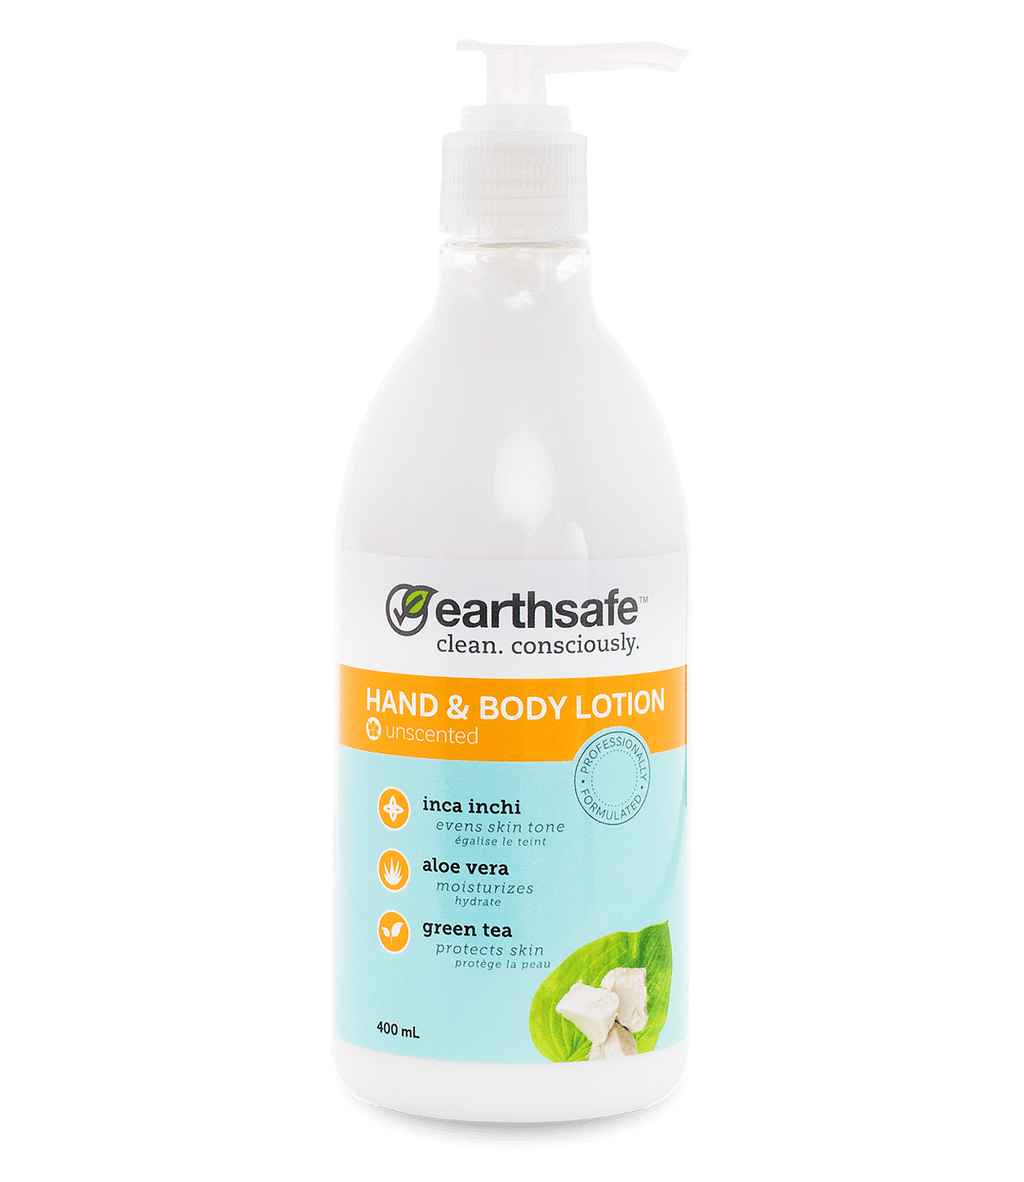 earthsafe Unscented Hand & Body Lotion - eVitality.ca